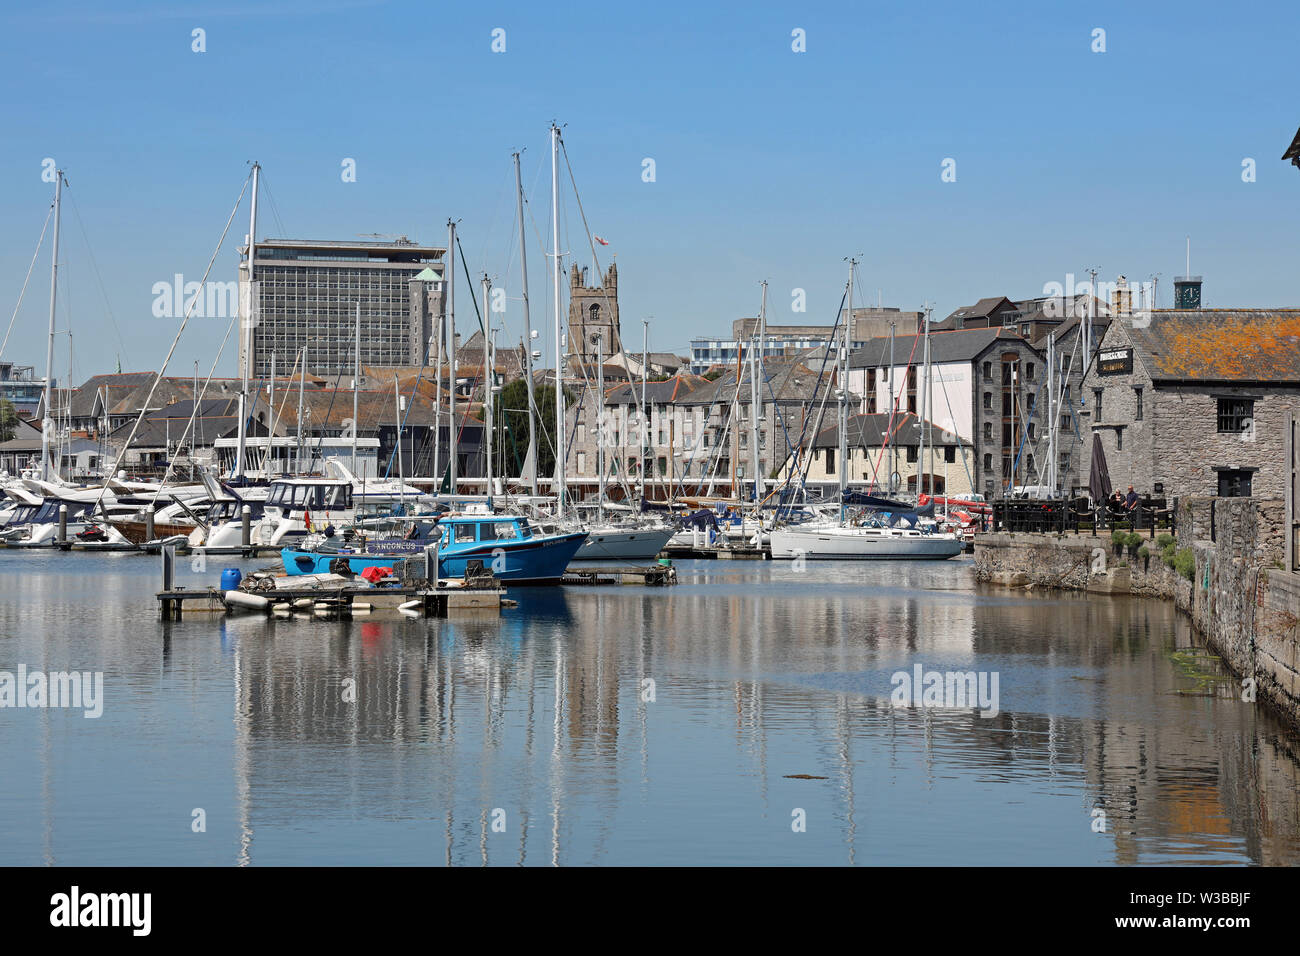 Plymouth Sutton Harbour, inner basin, yachts at rest in a safe haven. Stock Photo